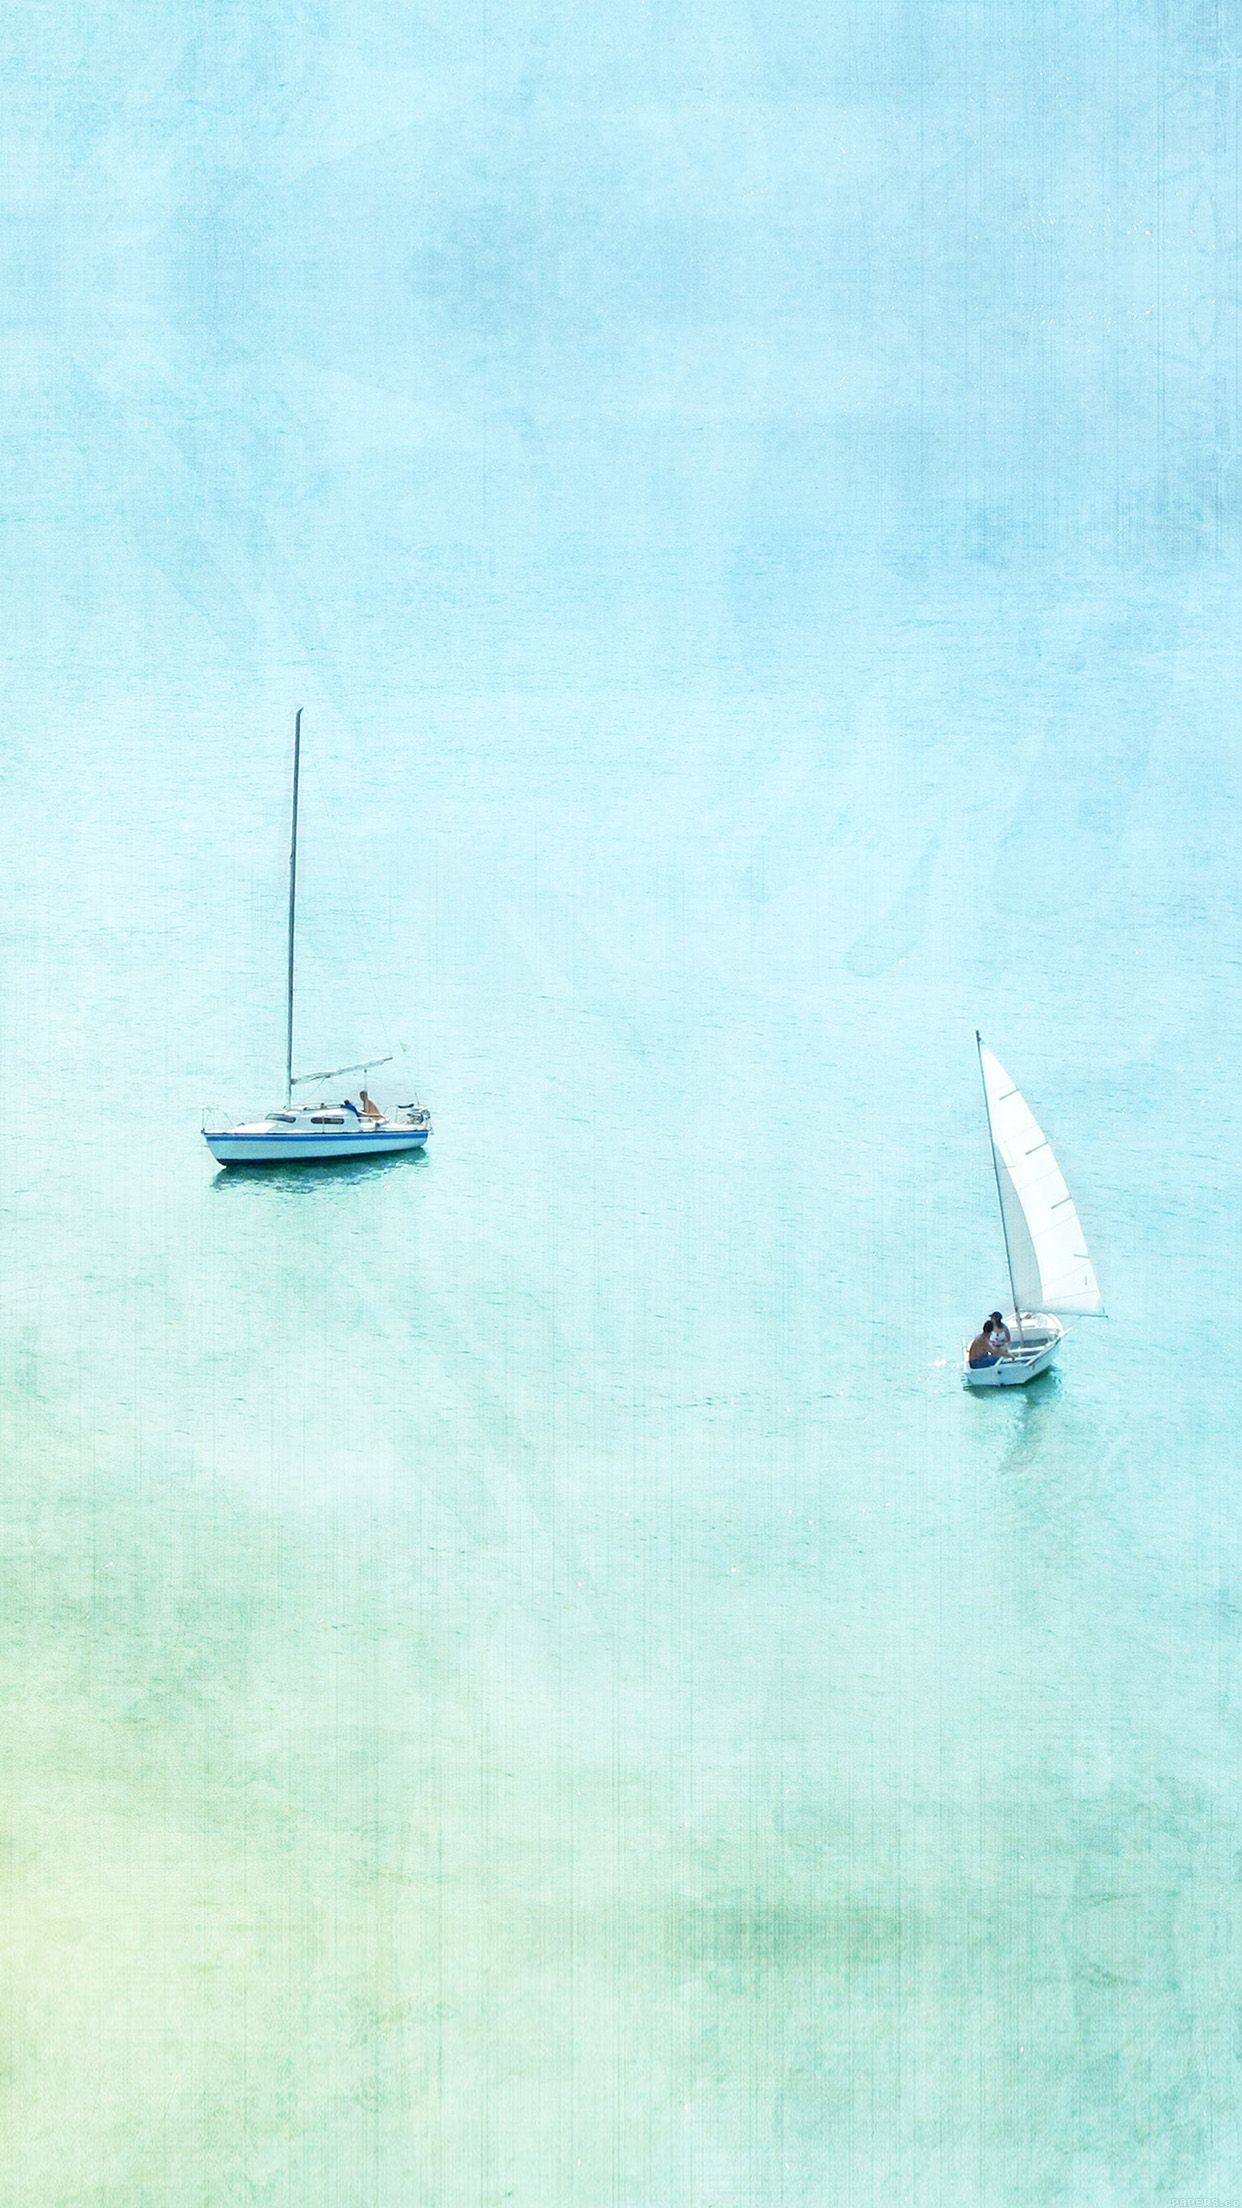 Recreational Boats Watercolor Painting Iphone 6 Plus Hd Wallpaper